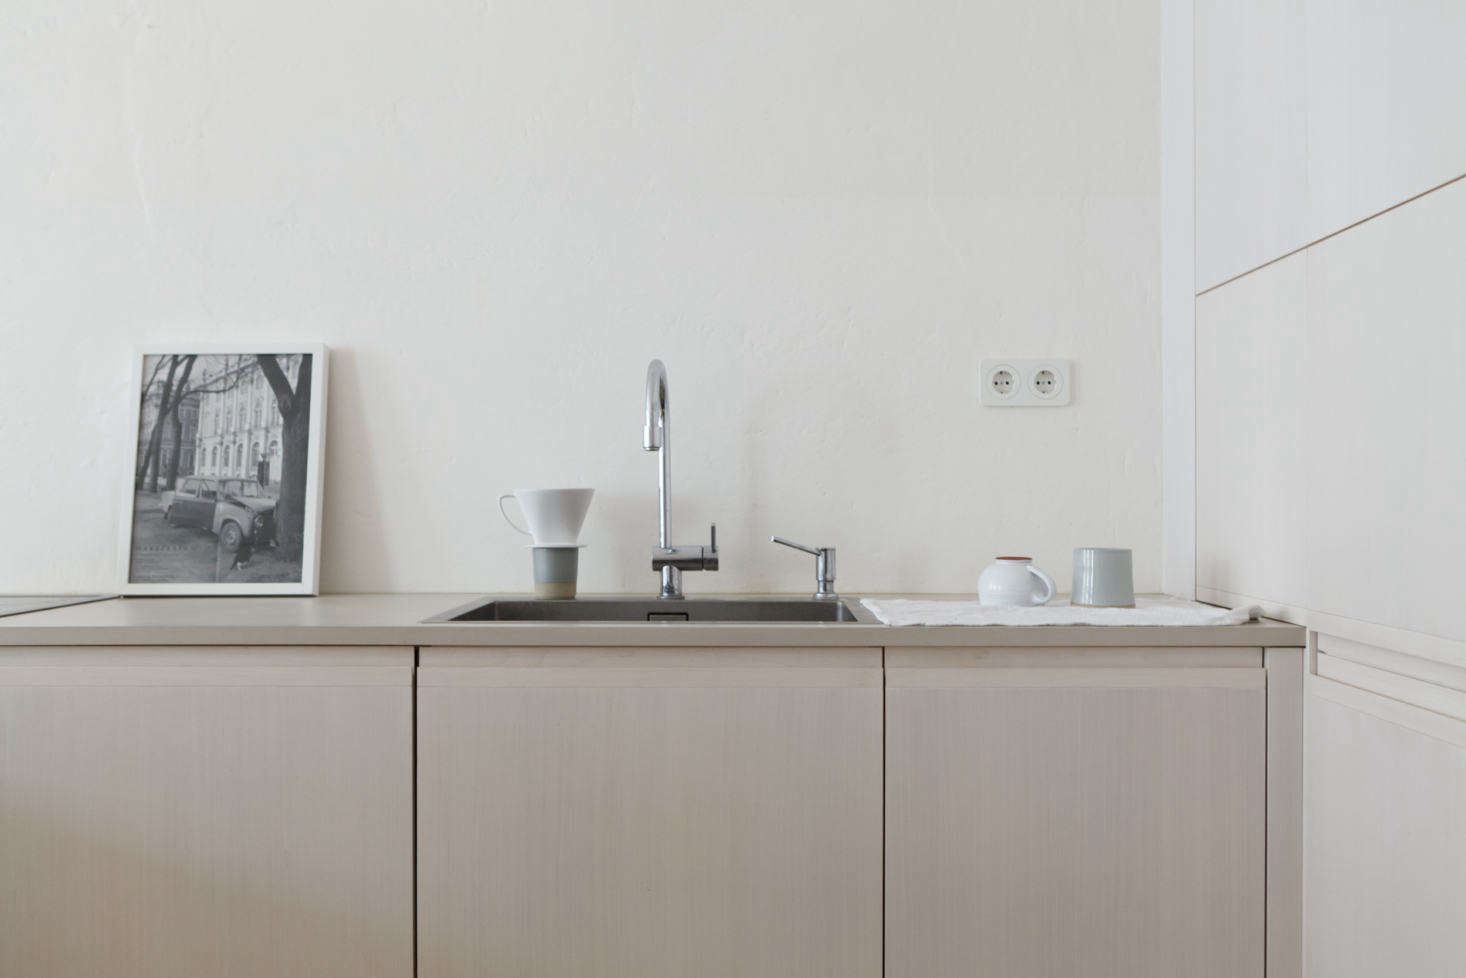 Photograph fromKitchen of the Week: A Poetic Apartment Kitchen by Studio Oink.